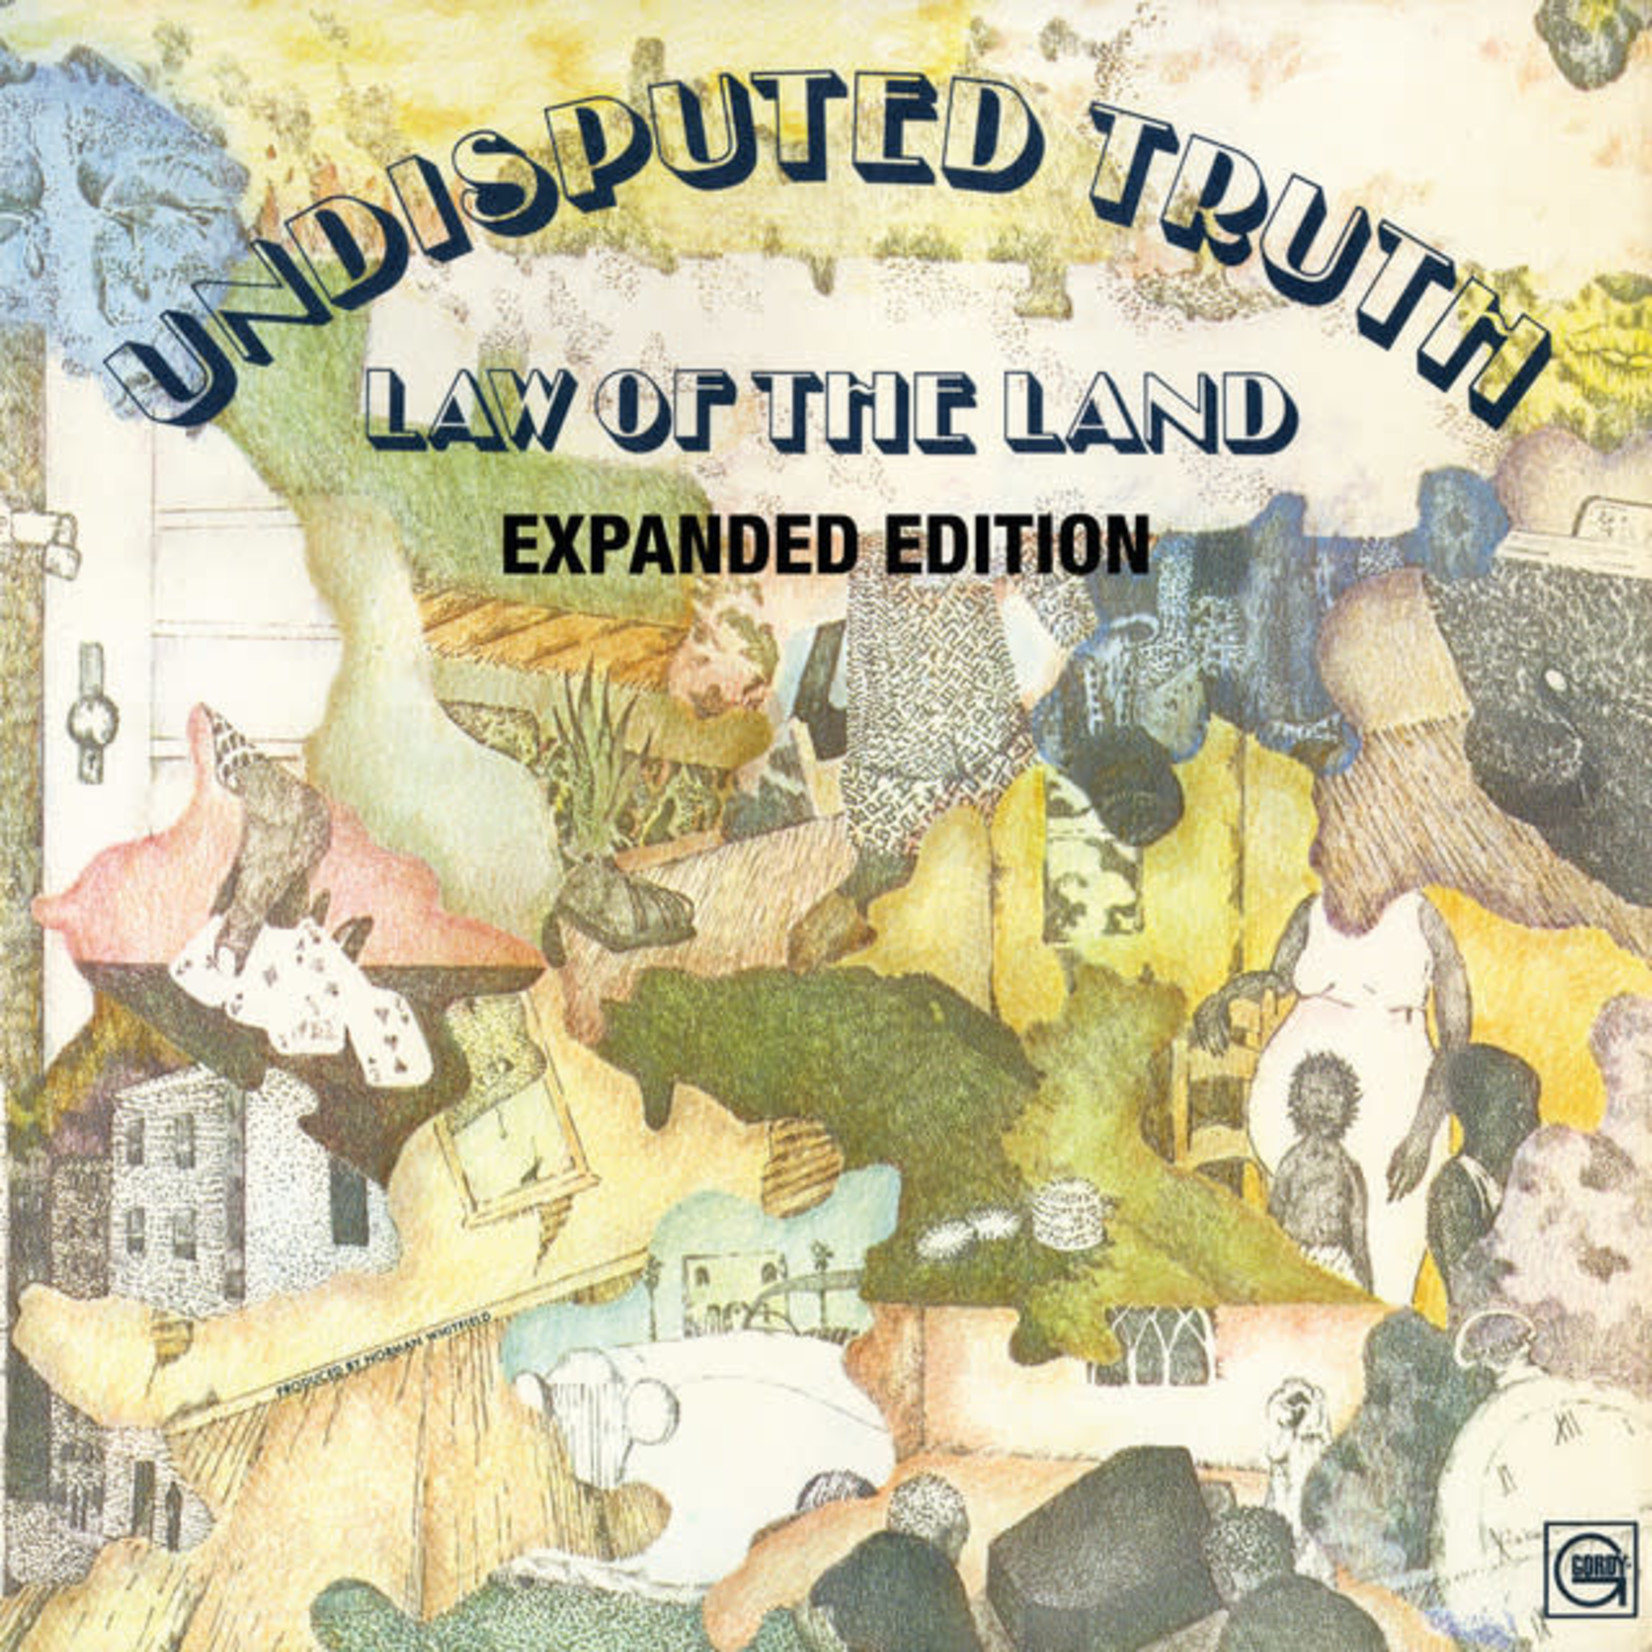 Vinyl The Undisputed Truth - Law Of The Land Final Sale